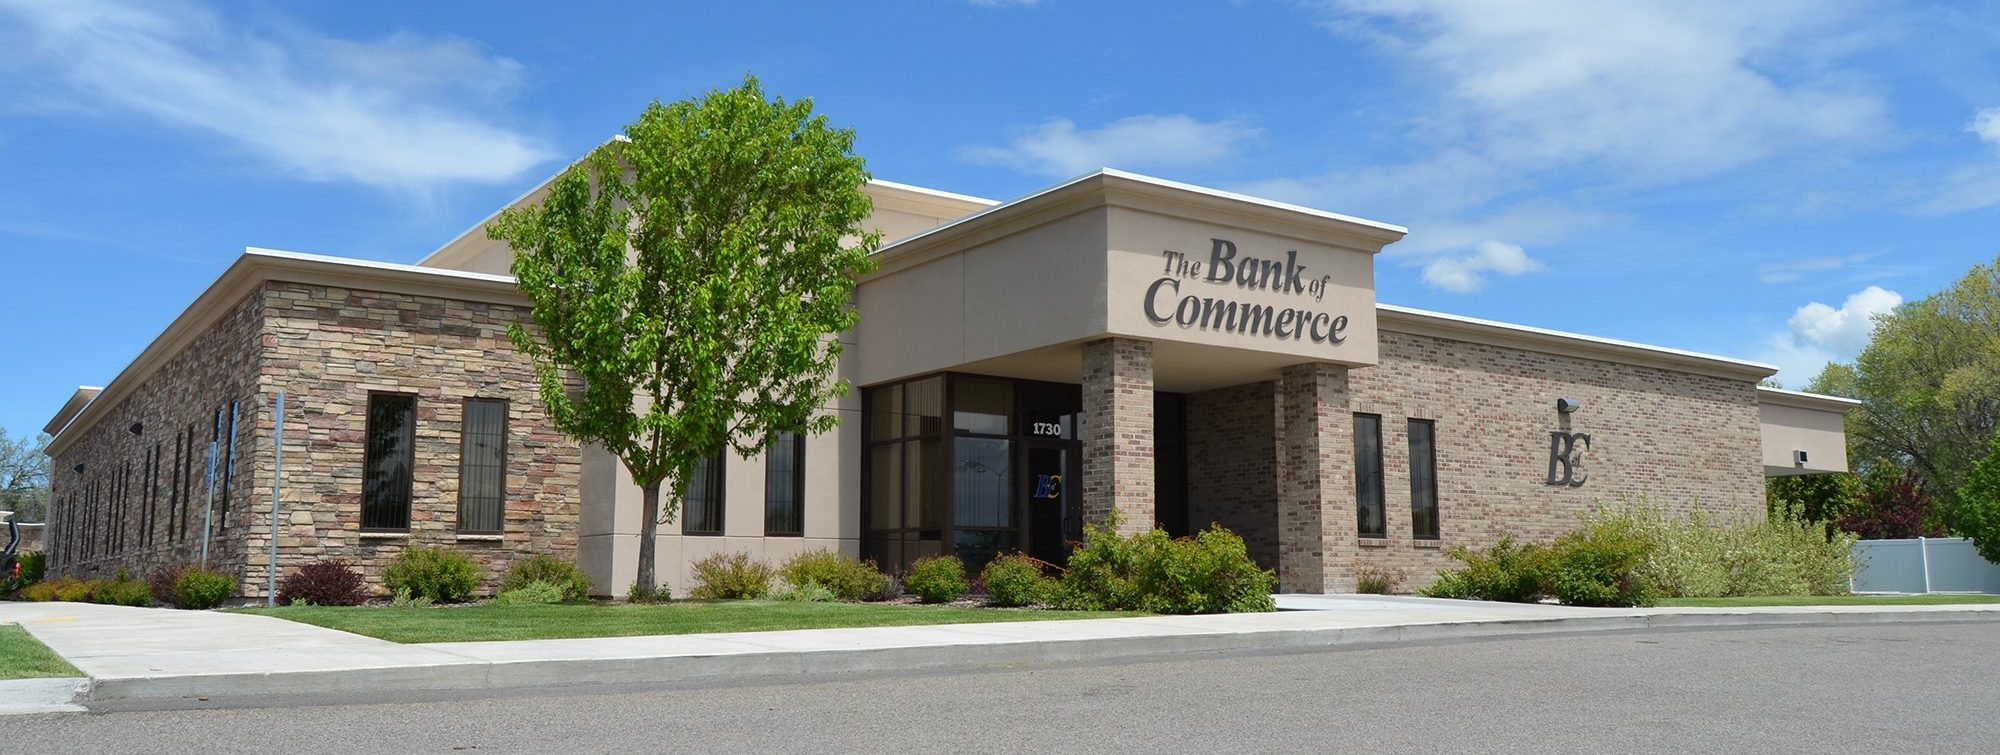 bank-of-commerce-broadway-branch-idaho-falls-e1463515816311